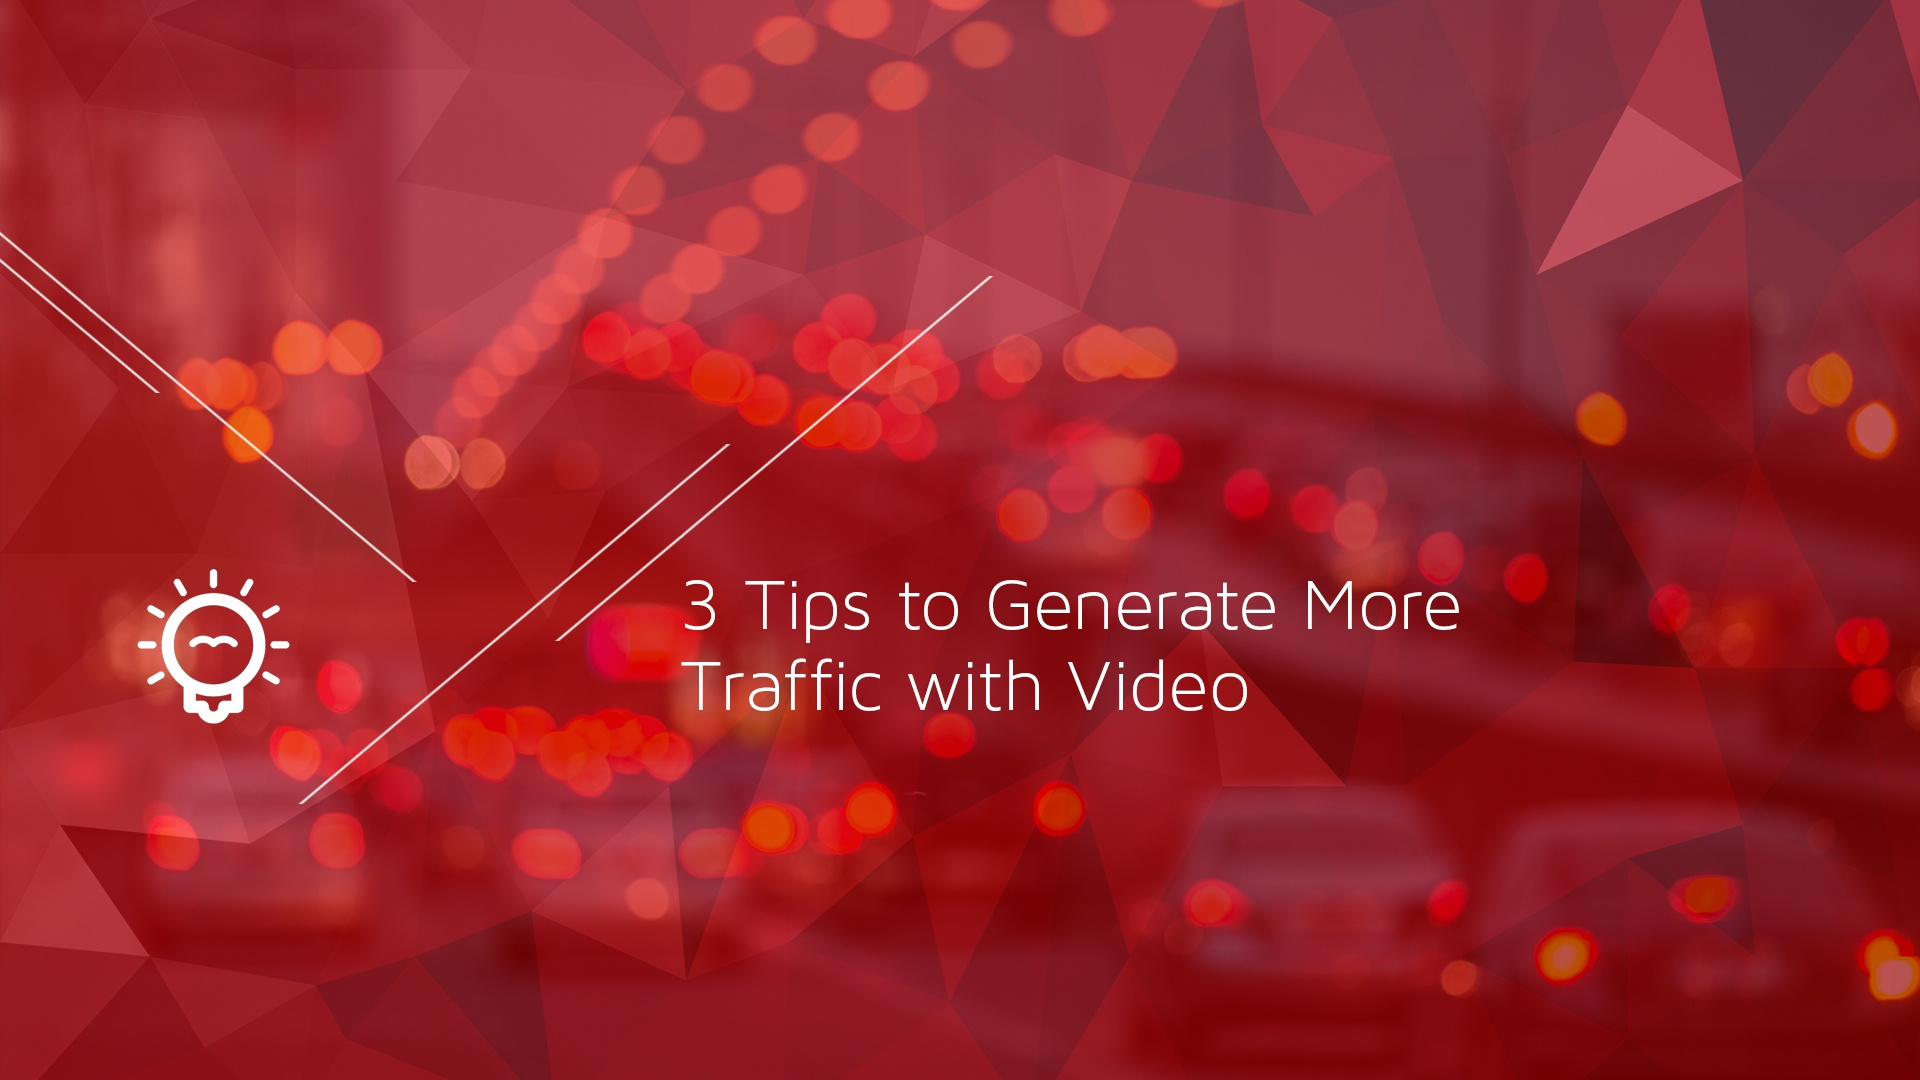 3 Tips to Generate More Web Traffic with Video